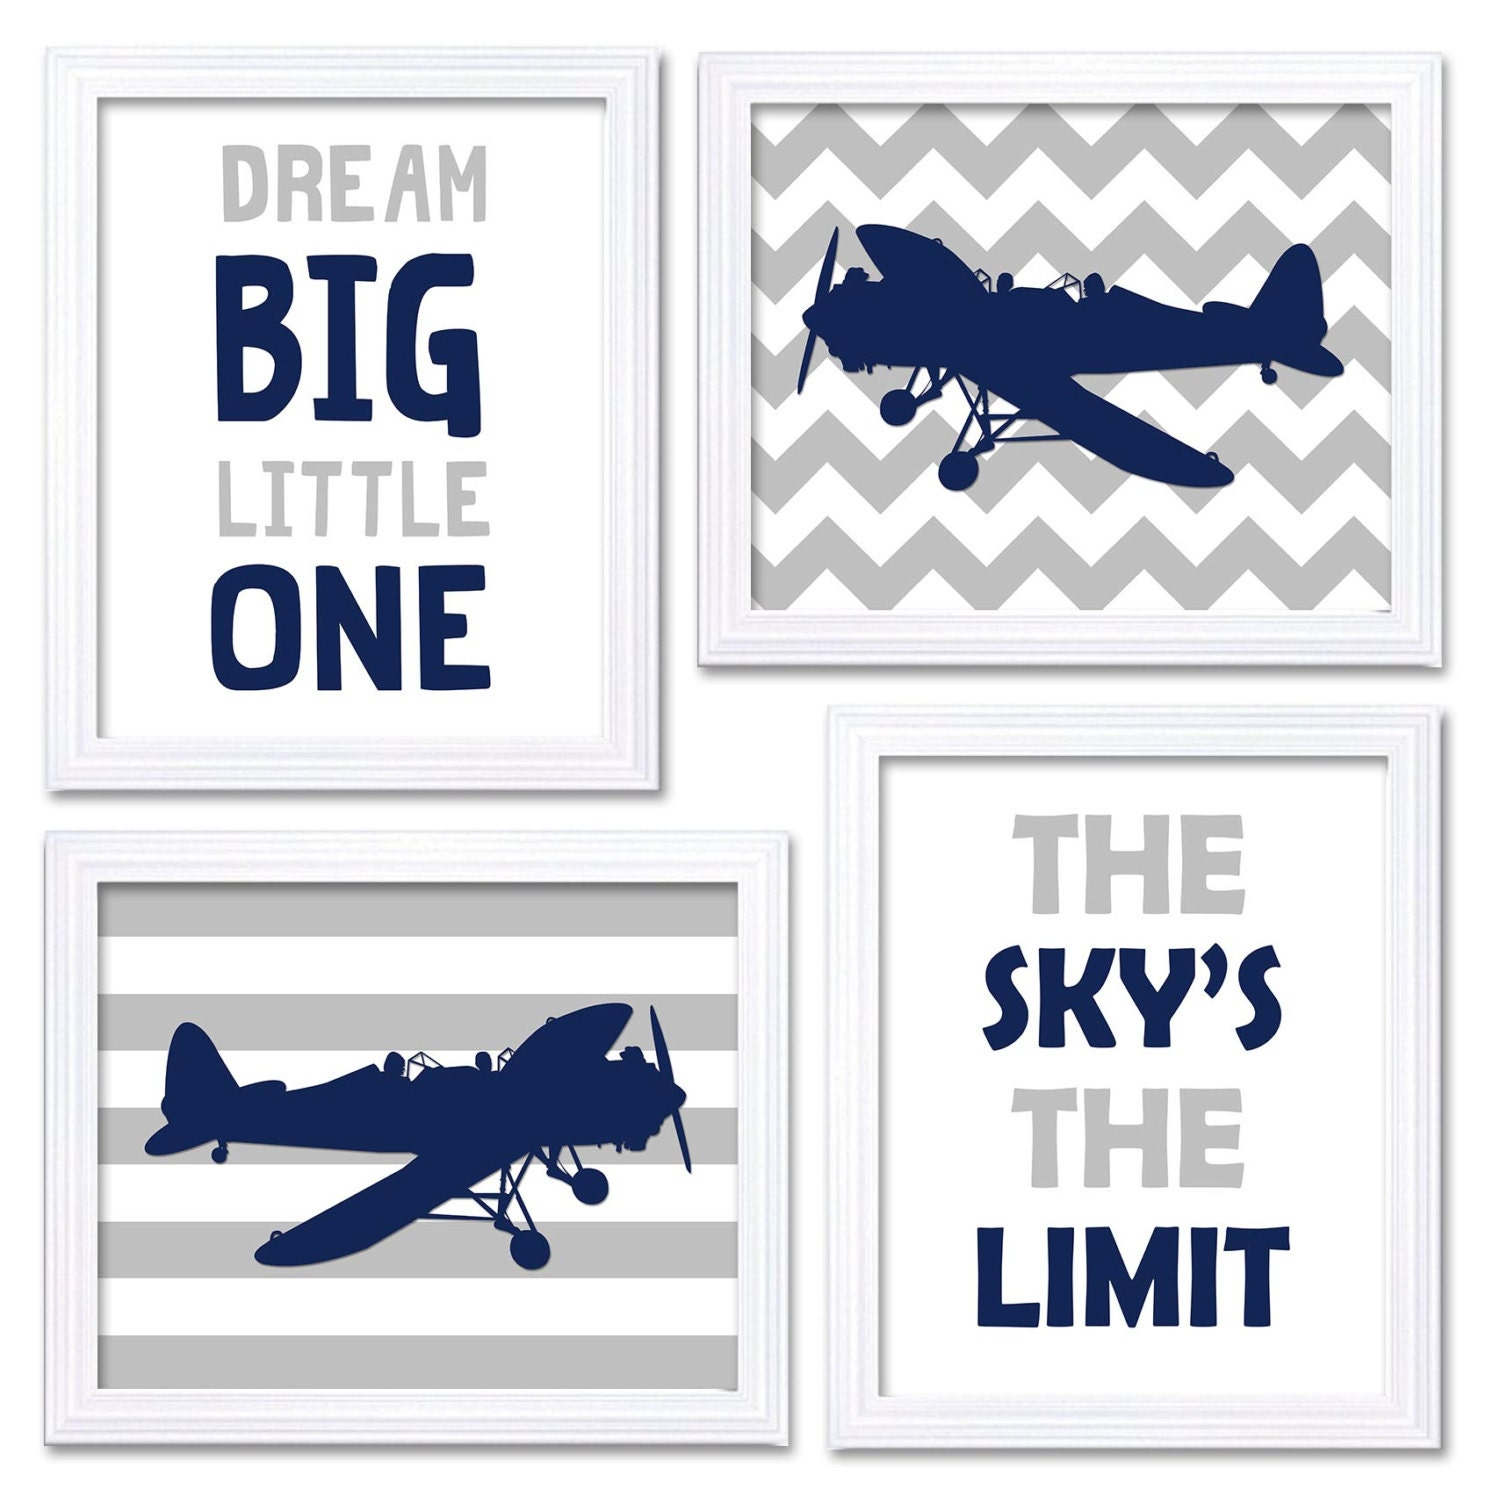 Airplane Nursery Art Navy Grey Nursery Print Set of 4 Transportation Dream Big Little One The Skys T